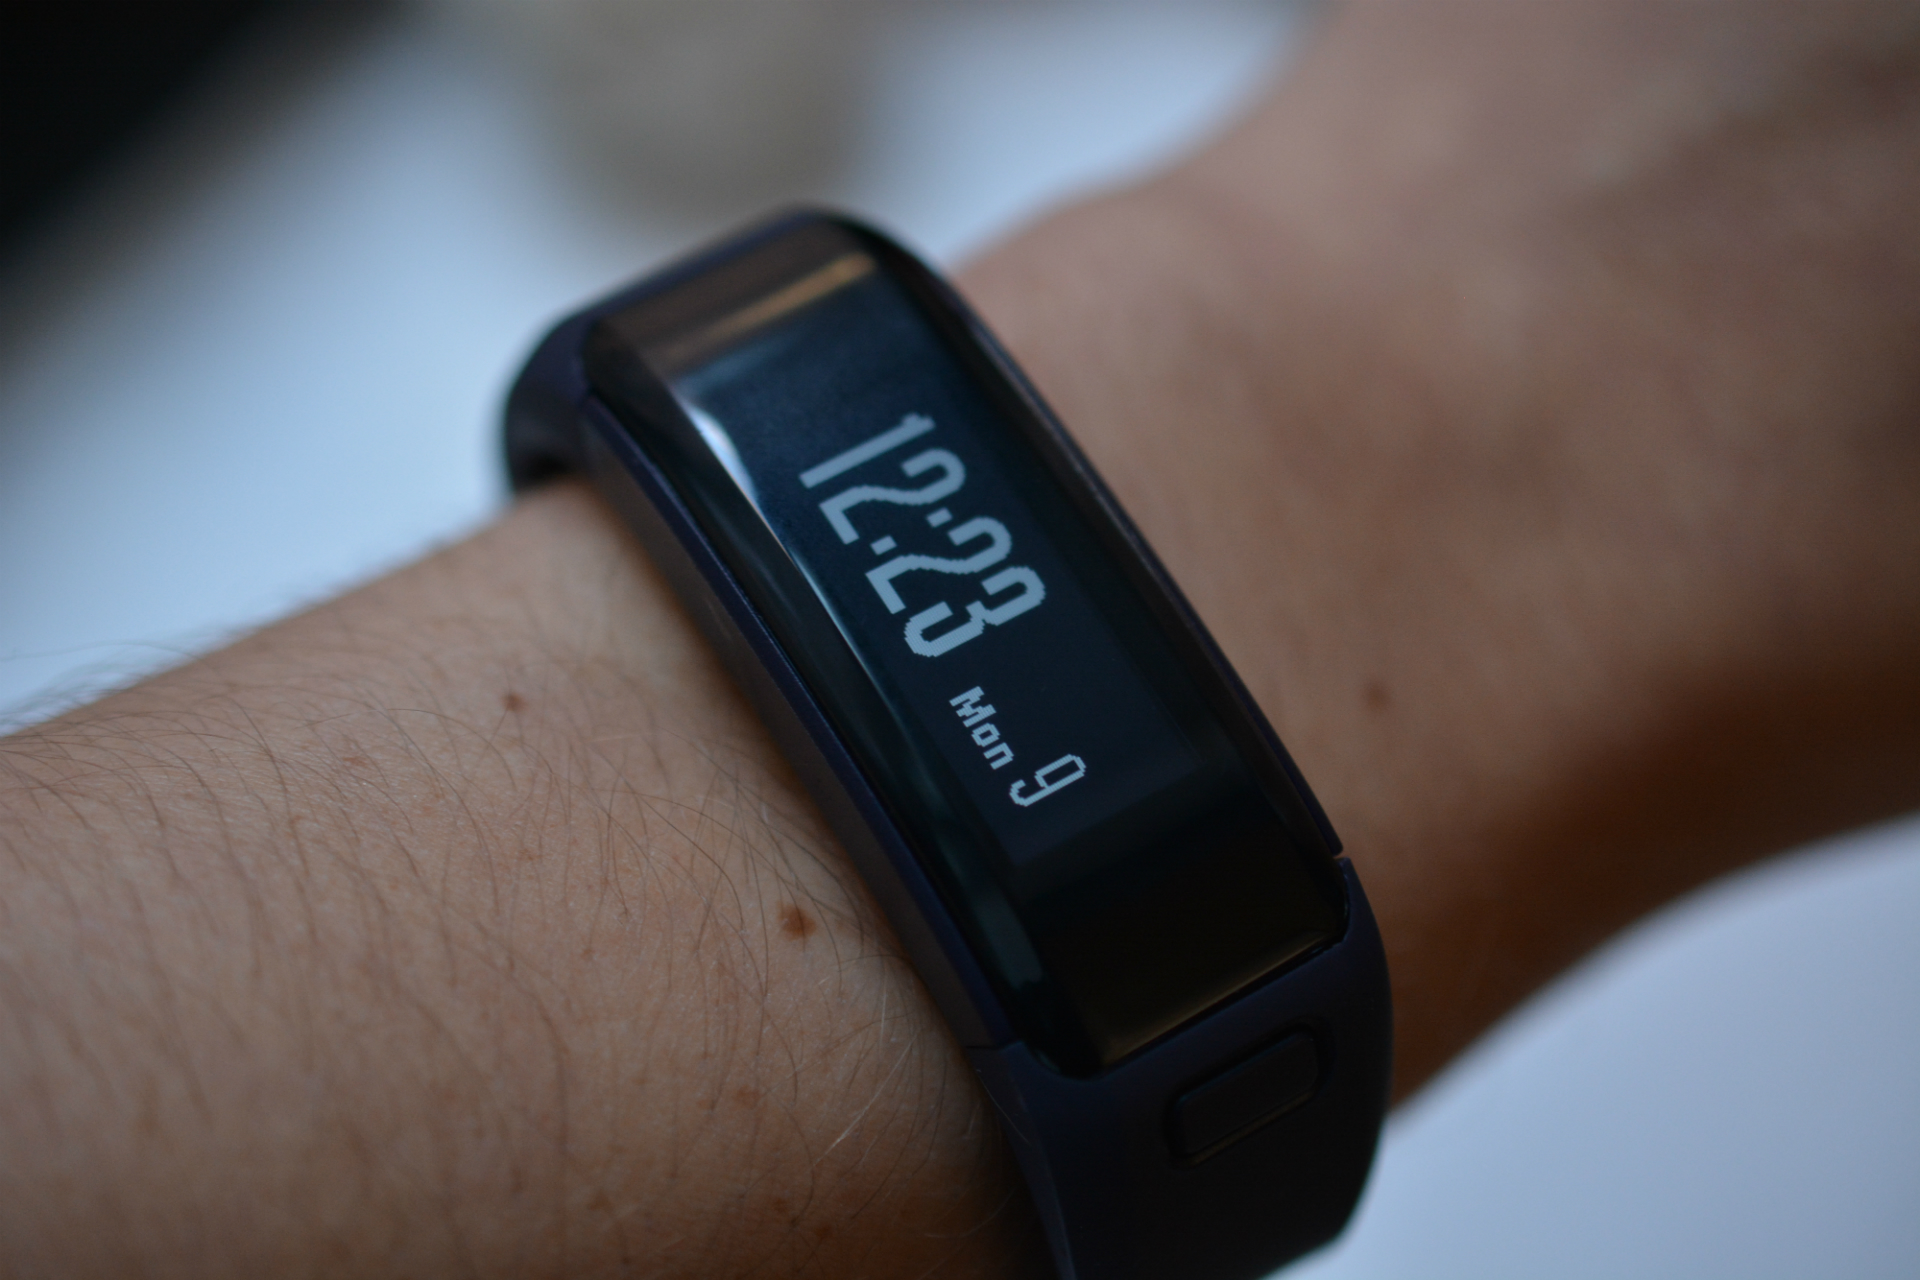 Garmin Vivosmart HR smartband con display